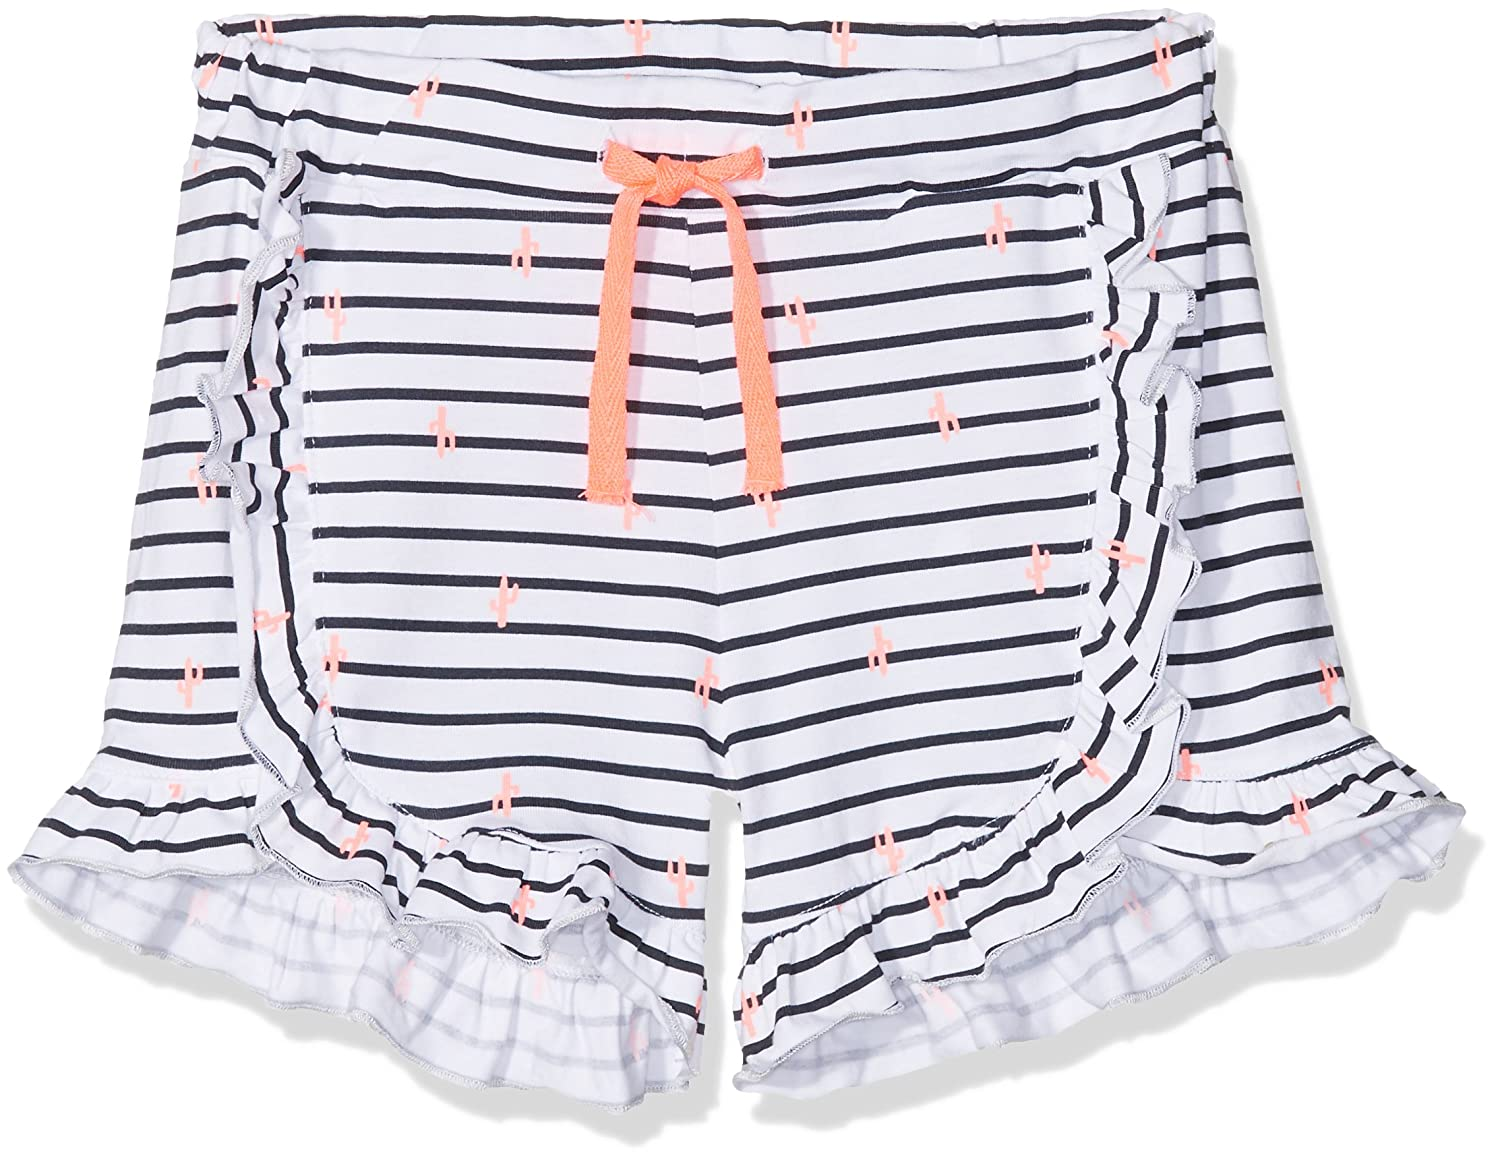 NAME IT Nmfderla Shorts, Pantalones Cortos para Bebés 13153196